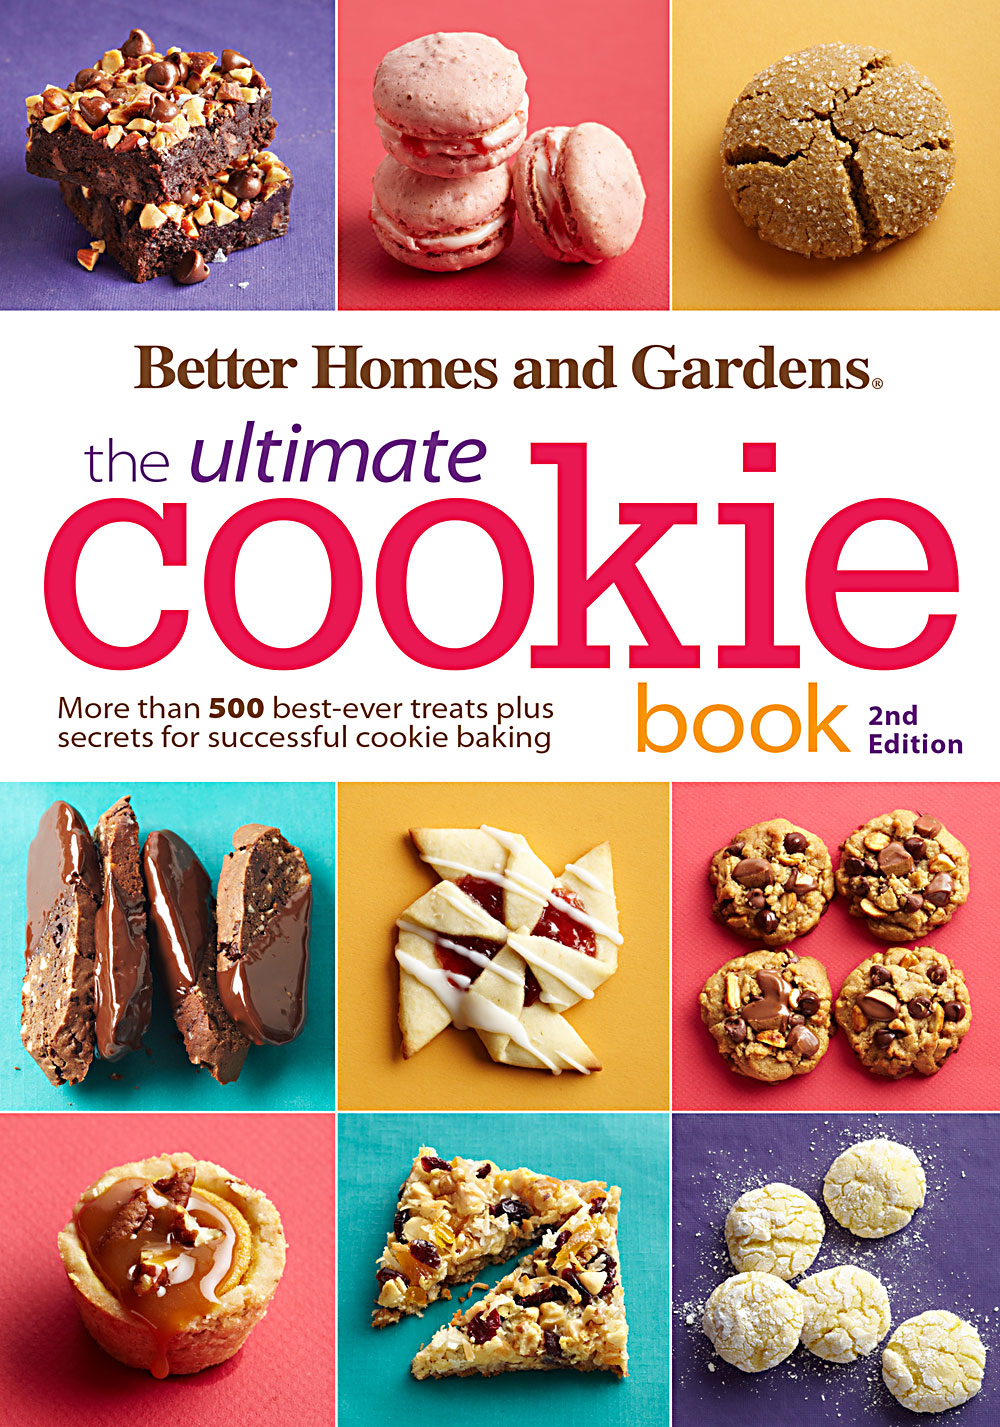 Review of Better Homes and Gardens Ultimate Cookie Book (2nd ed.), on ItsYummi.com